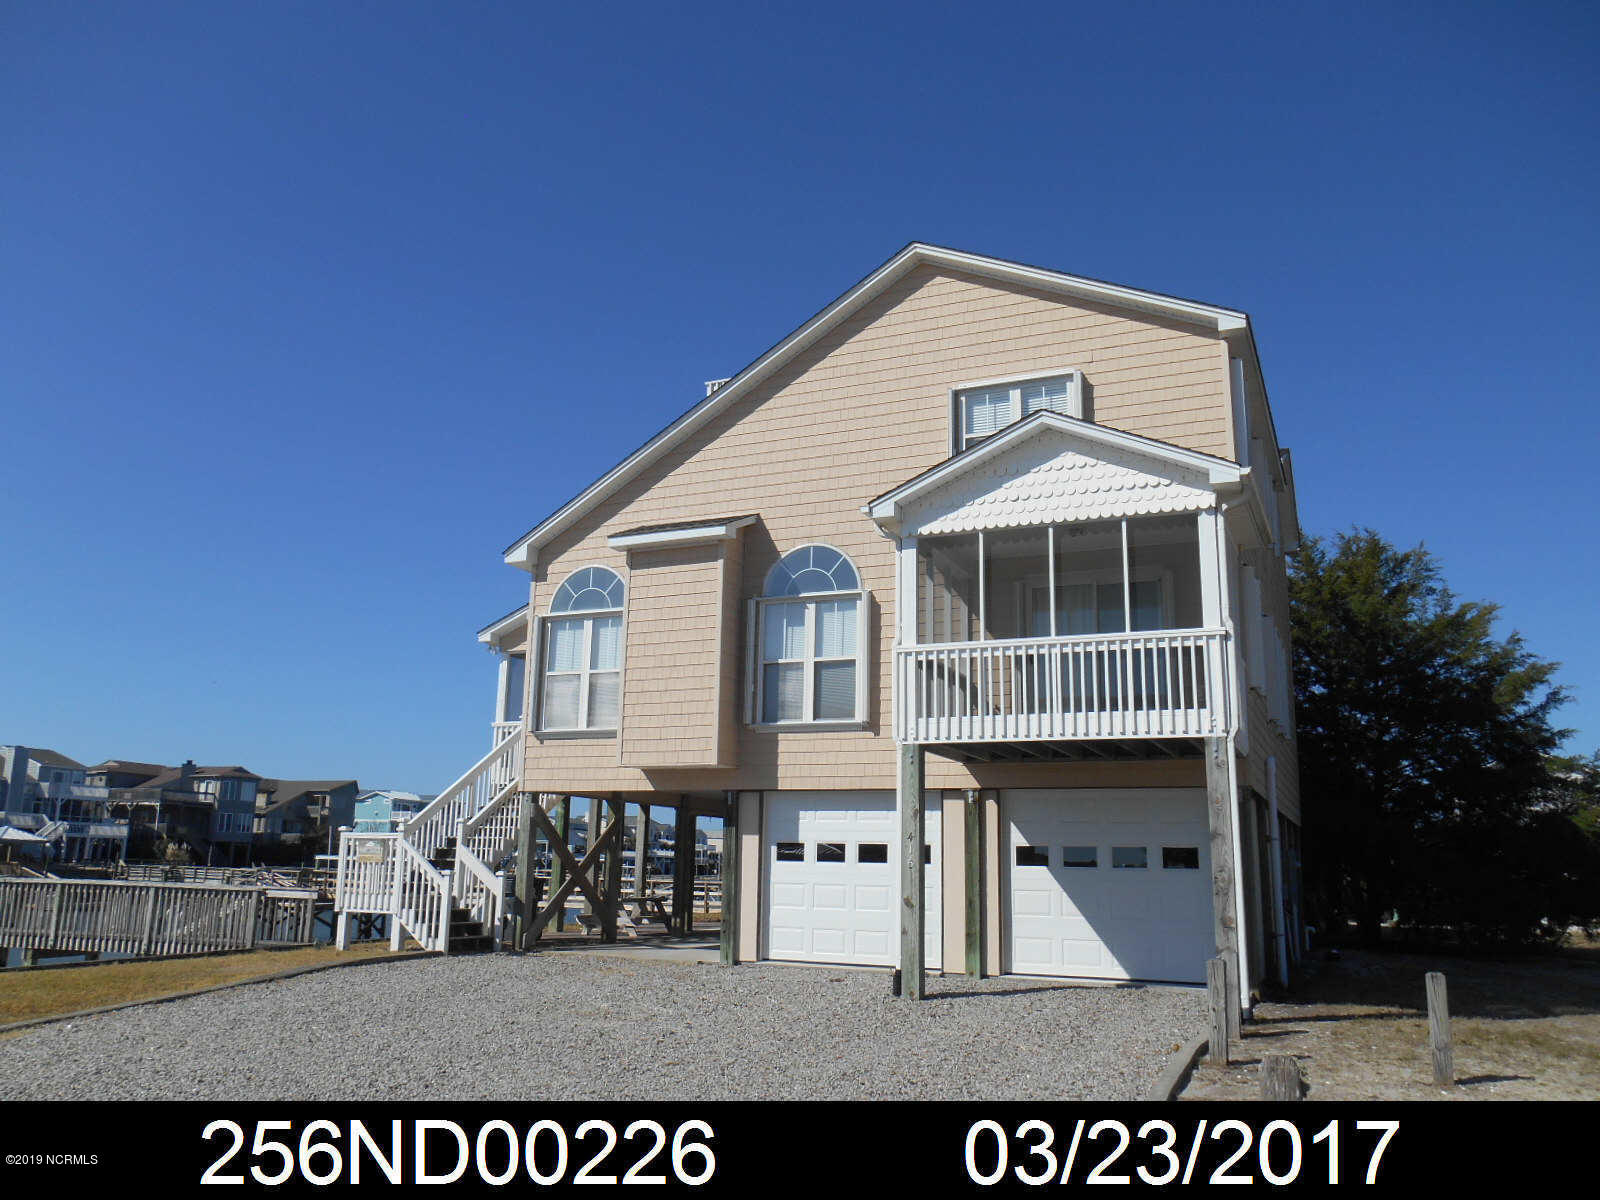 416 18th Street Sunset Beach, NC 28468